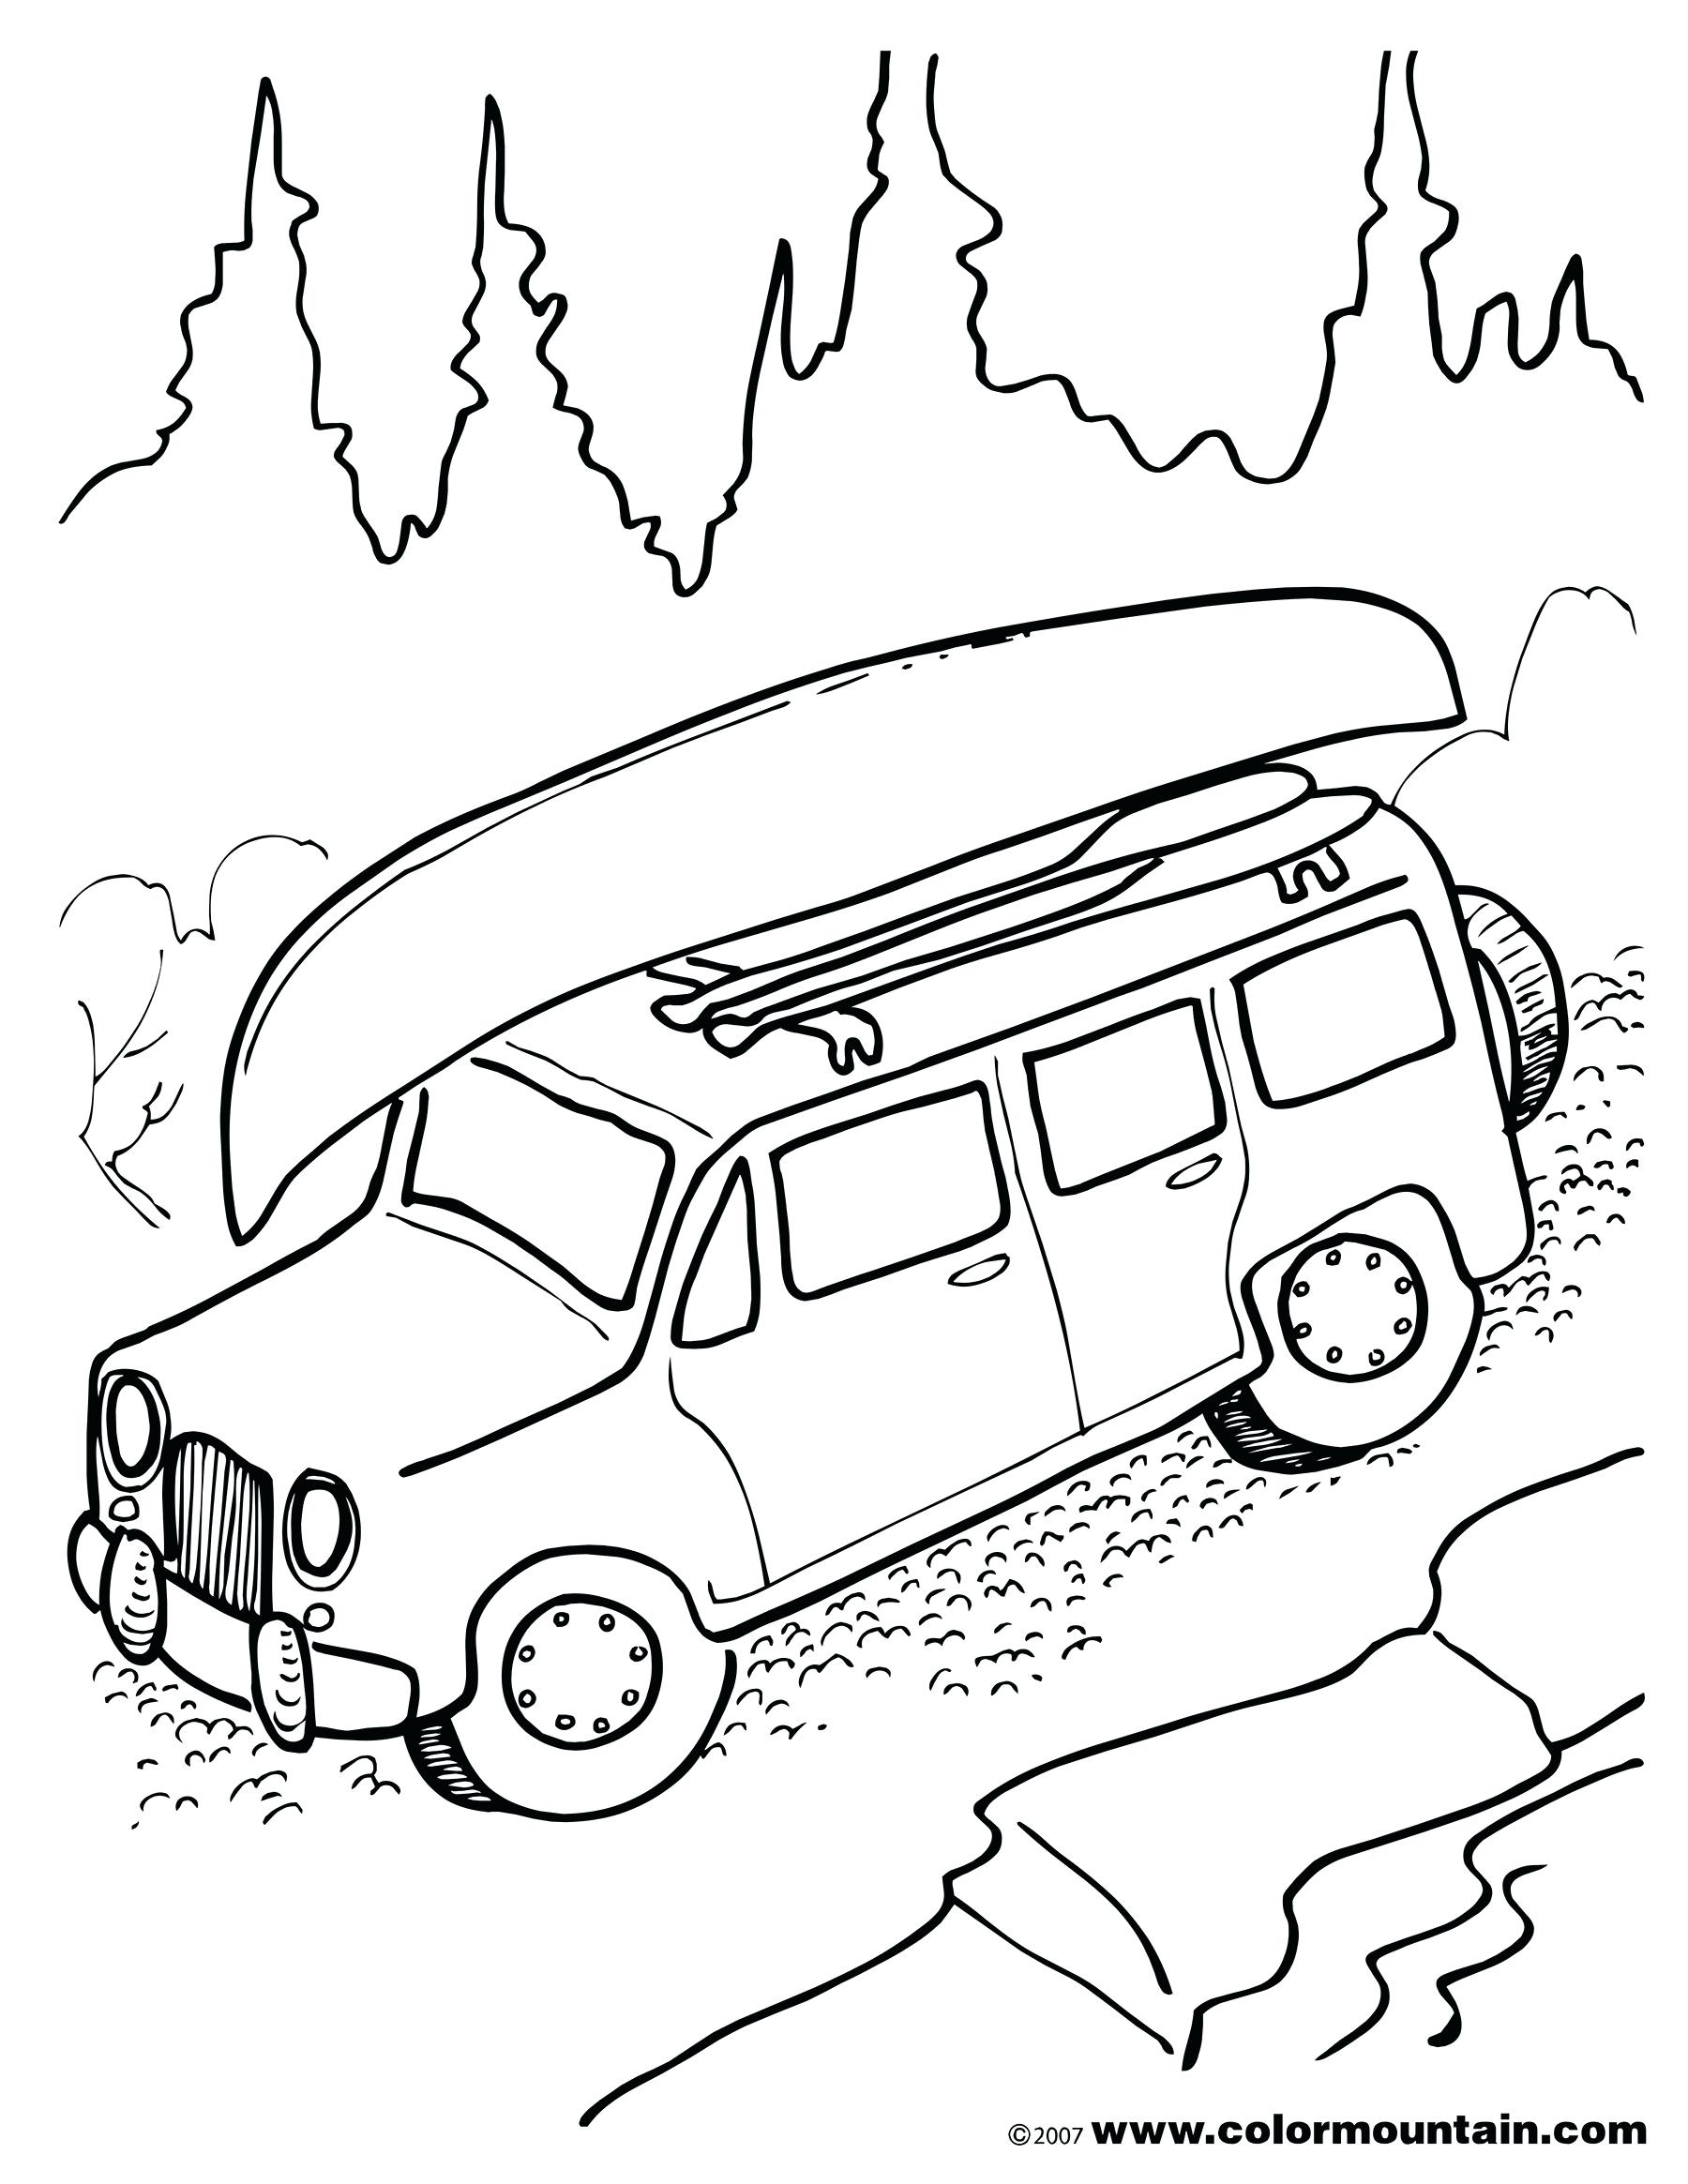 Safari Jeep Drawing at GetDrawings.com | Free for personal use ...